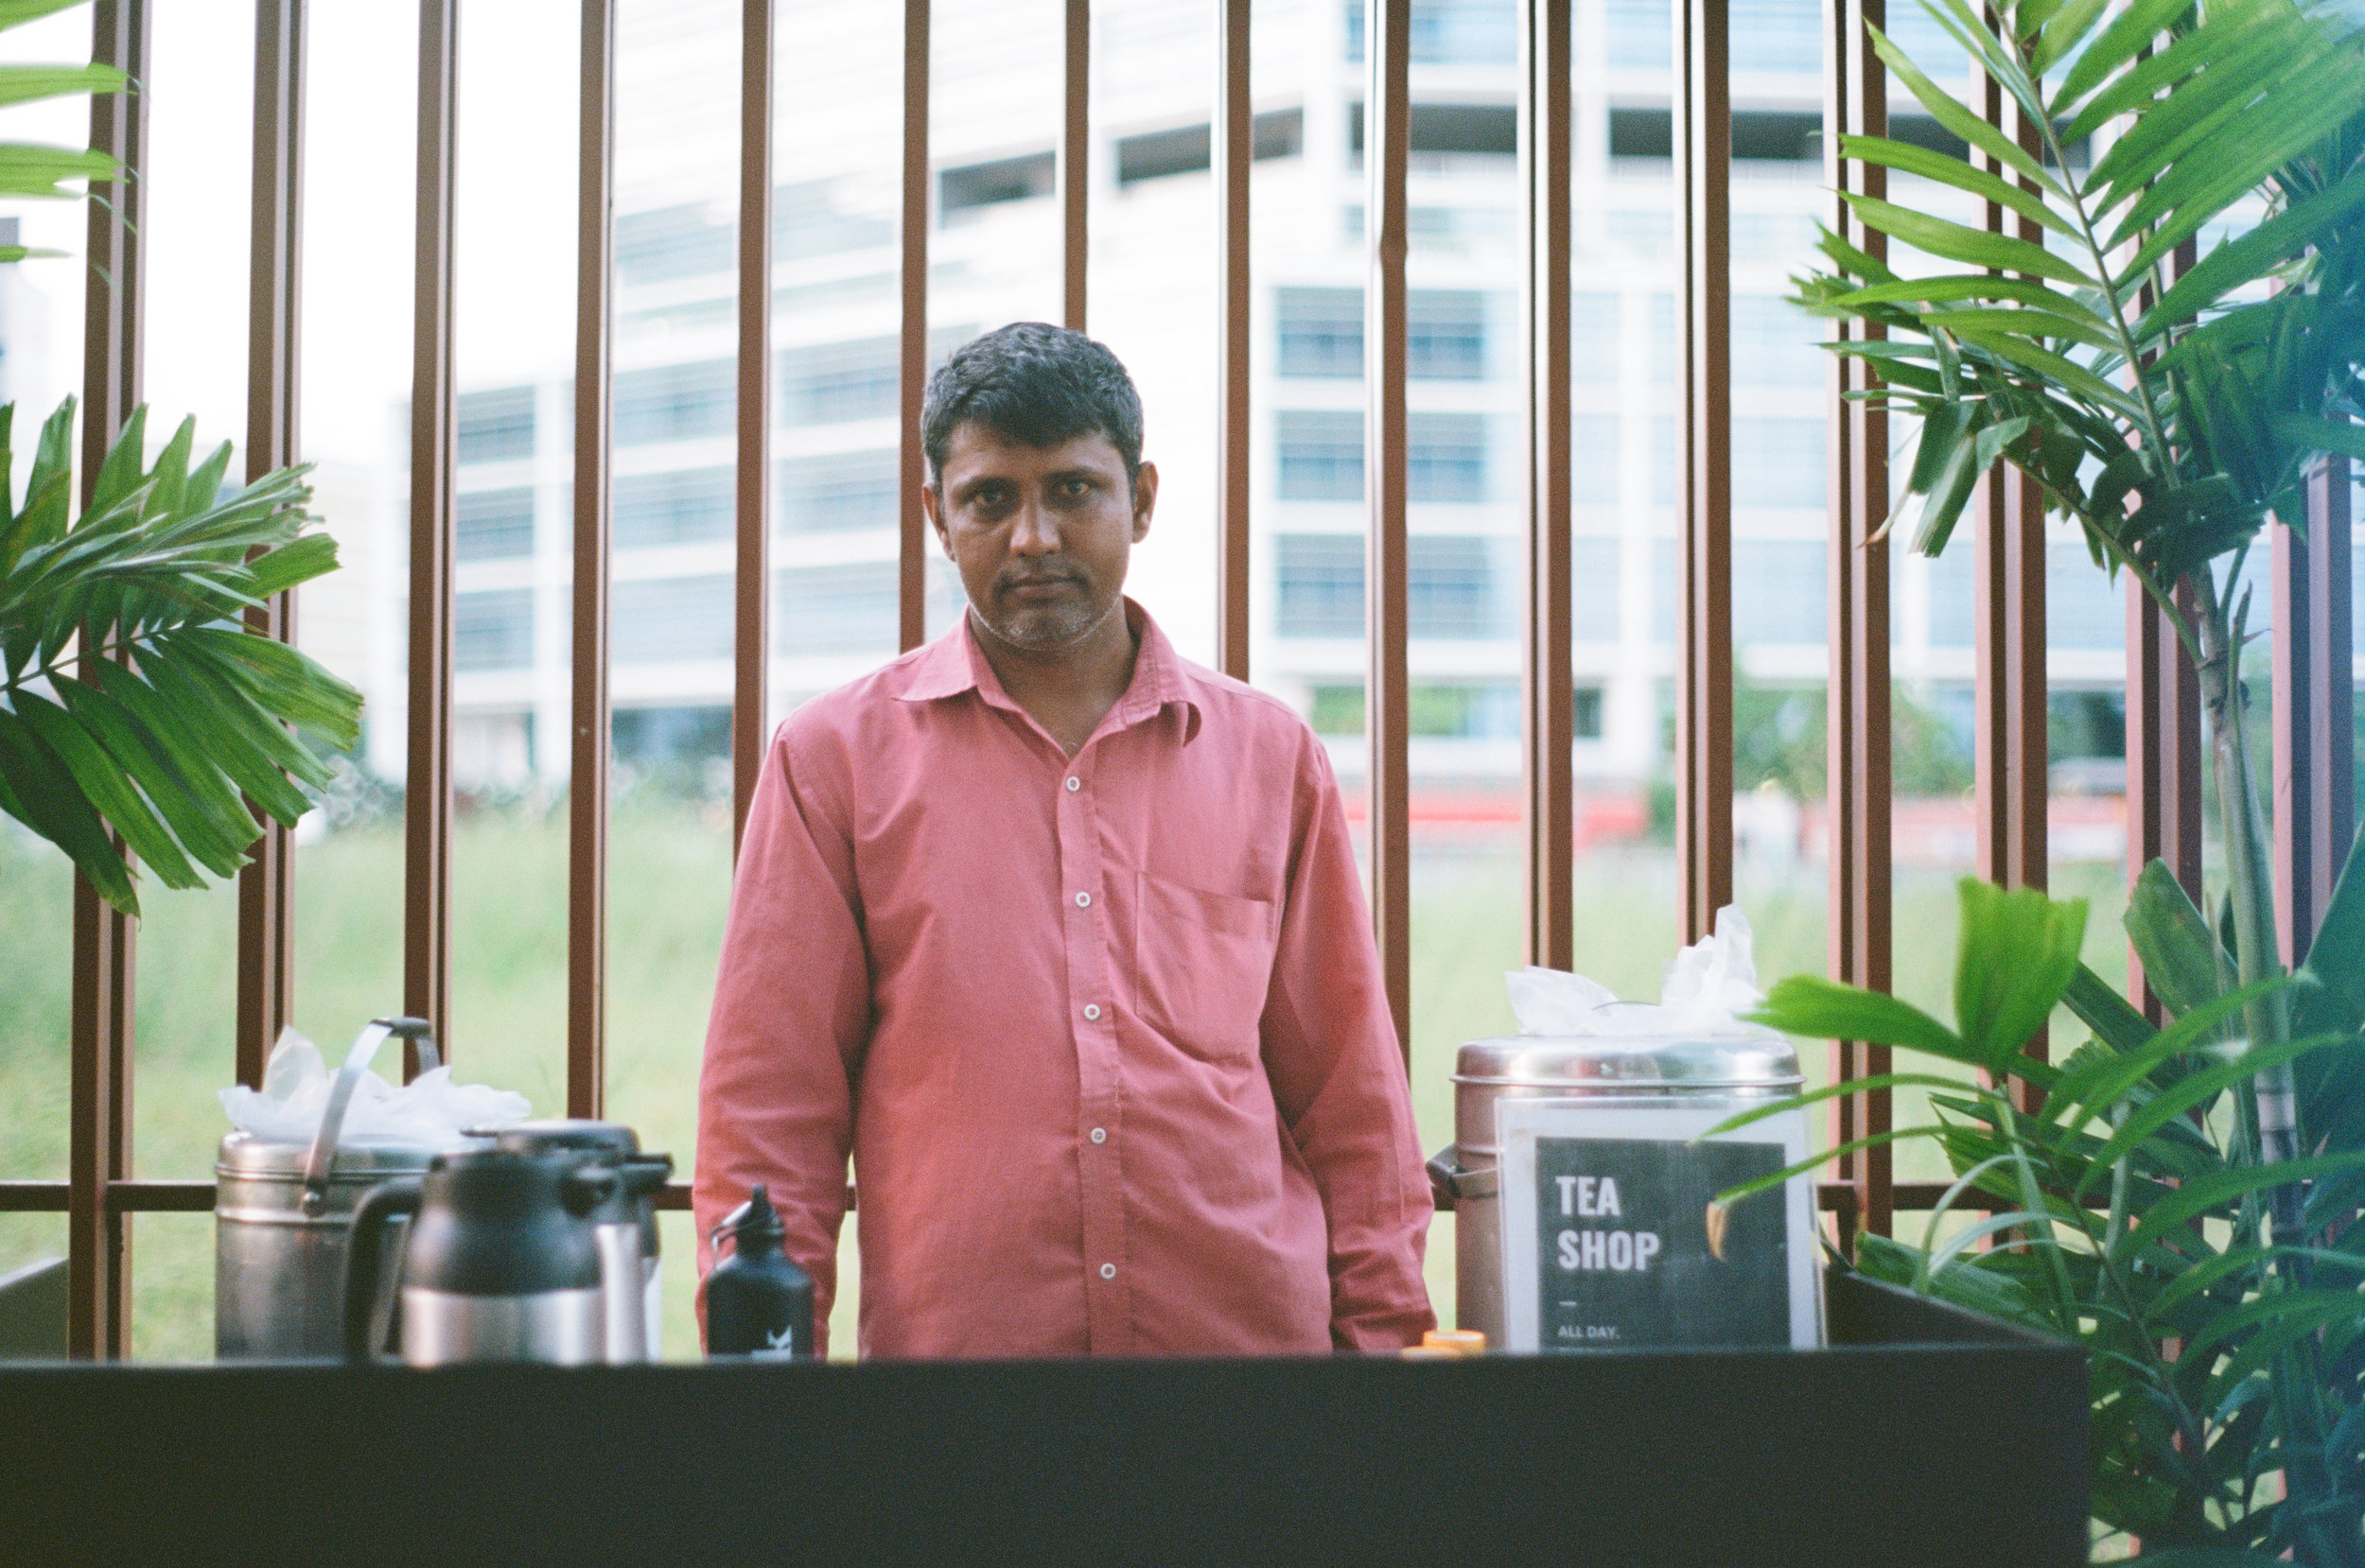 Mohammad Sikander selling tea at WeWork in Bandra Kurla Complex, Bombay